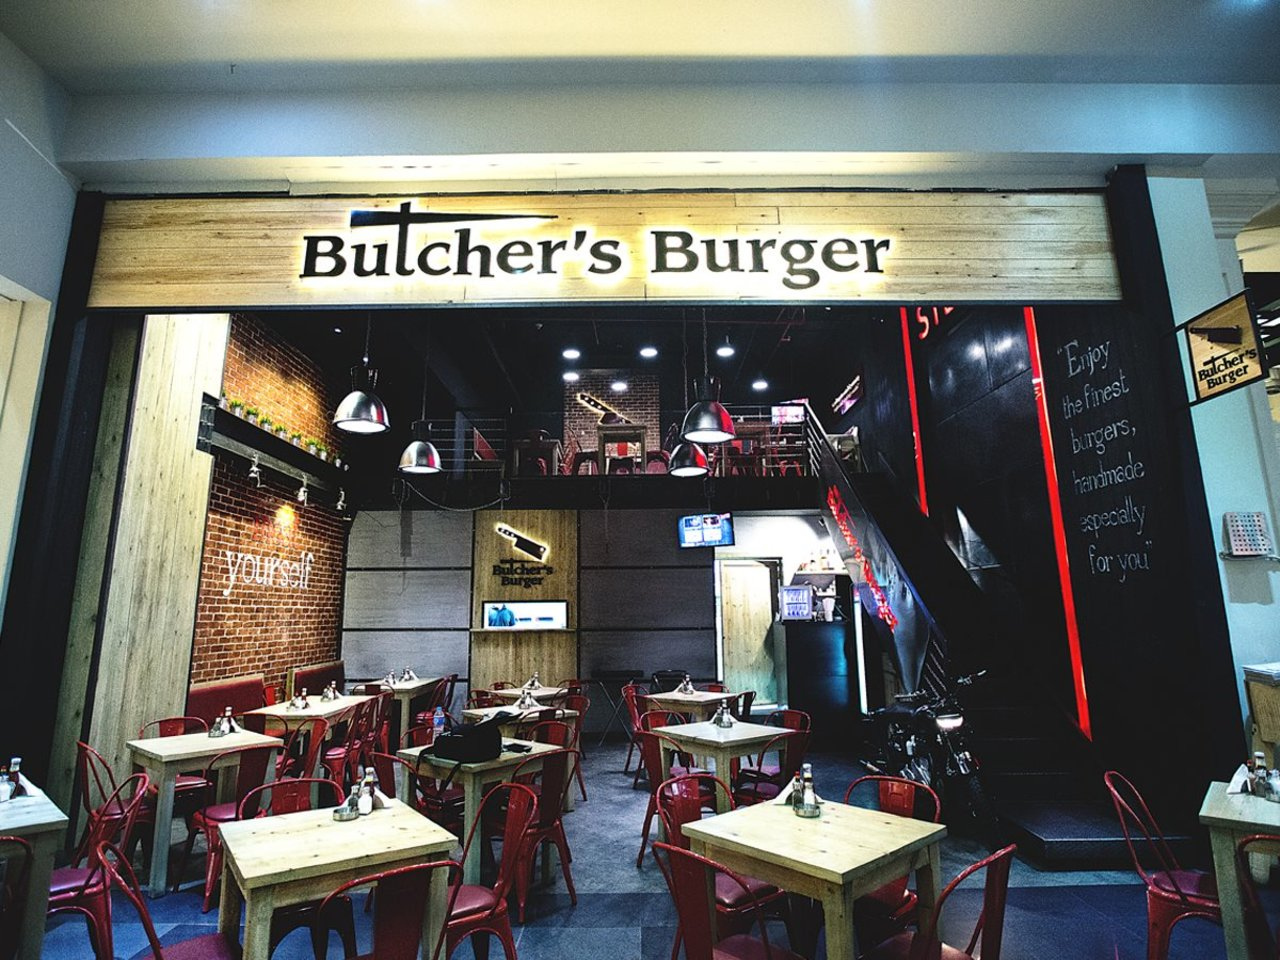 منيو وفروع ورقم مطعم بوتشرز برجر Butcher's Burger menu